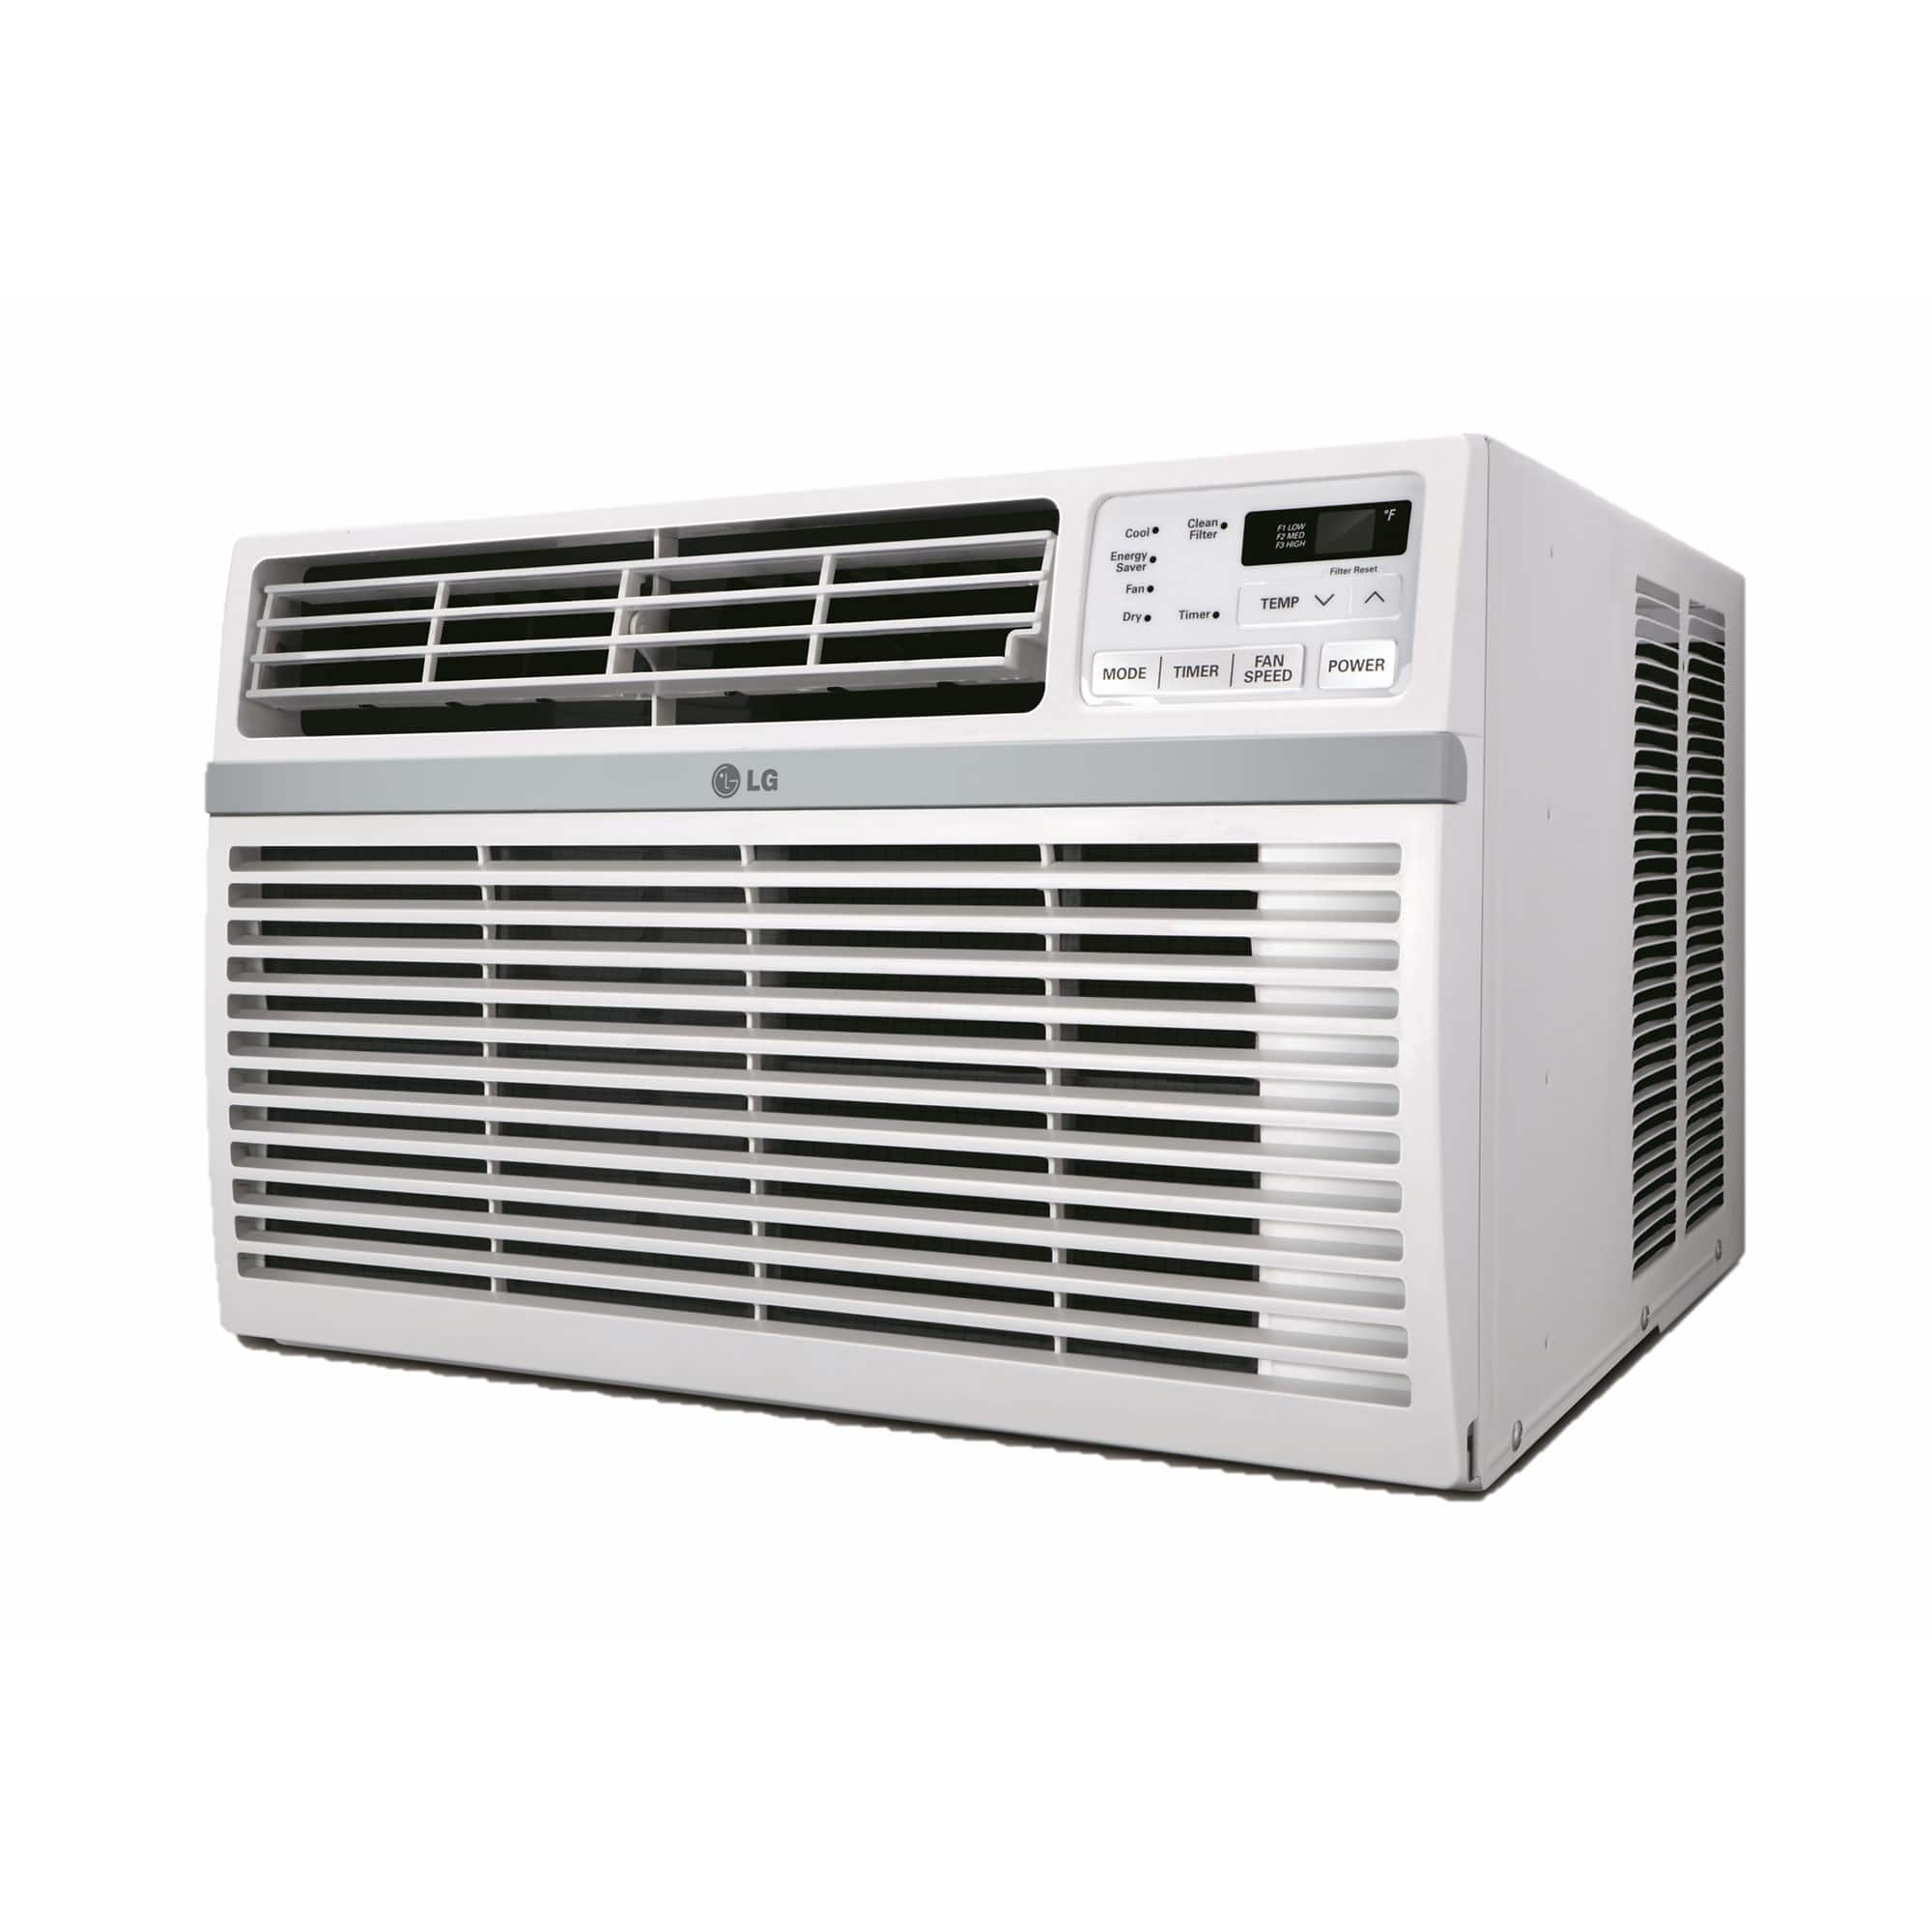 LG 8000 BTU Window Air Conditioner $180 in store ($200 w/free ship) $  #21231E